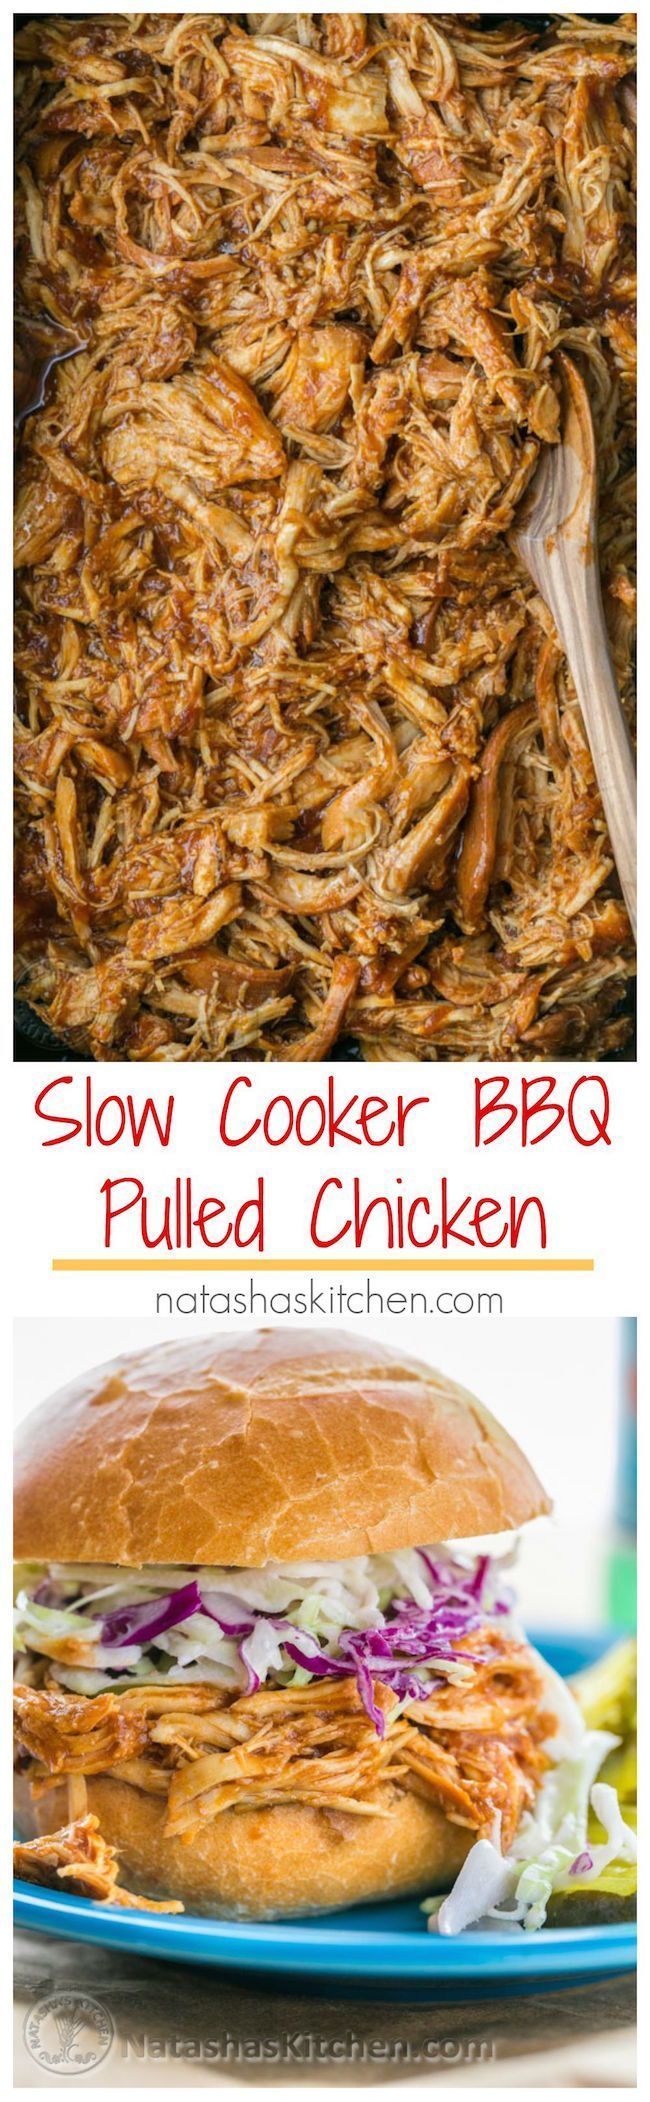 Crockpot BBQ Chicken - The Best Slow Cooker Pulled Chicken! Fall-apart tender, juicy and delicious! | http://natashaskitchen.com